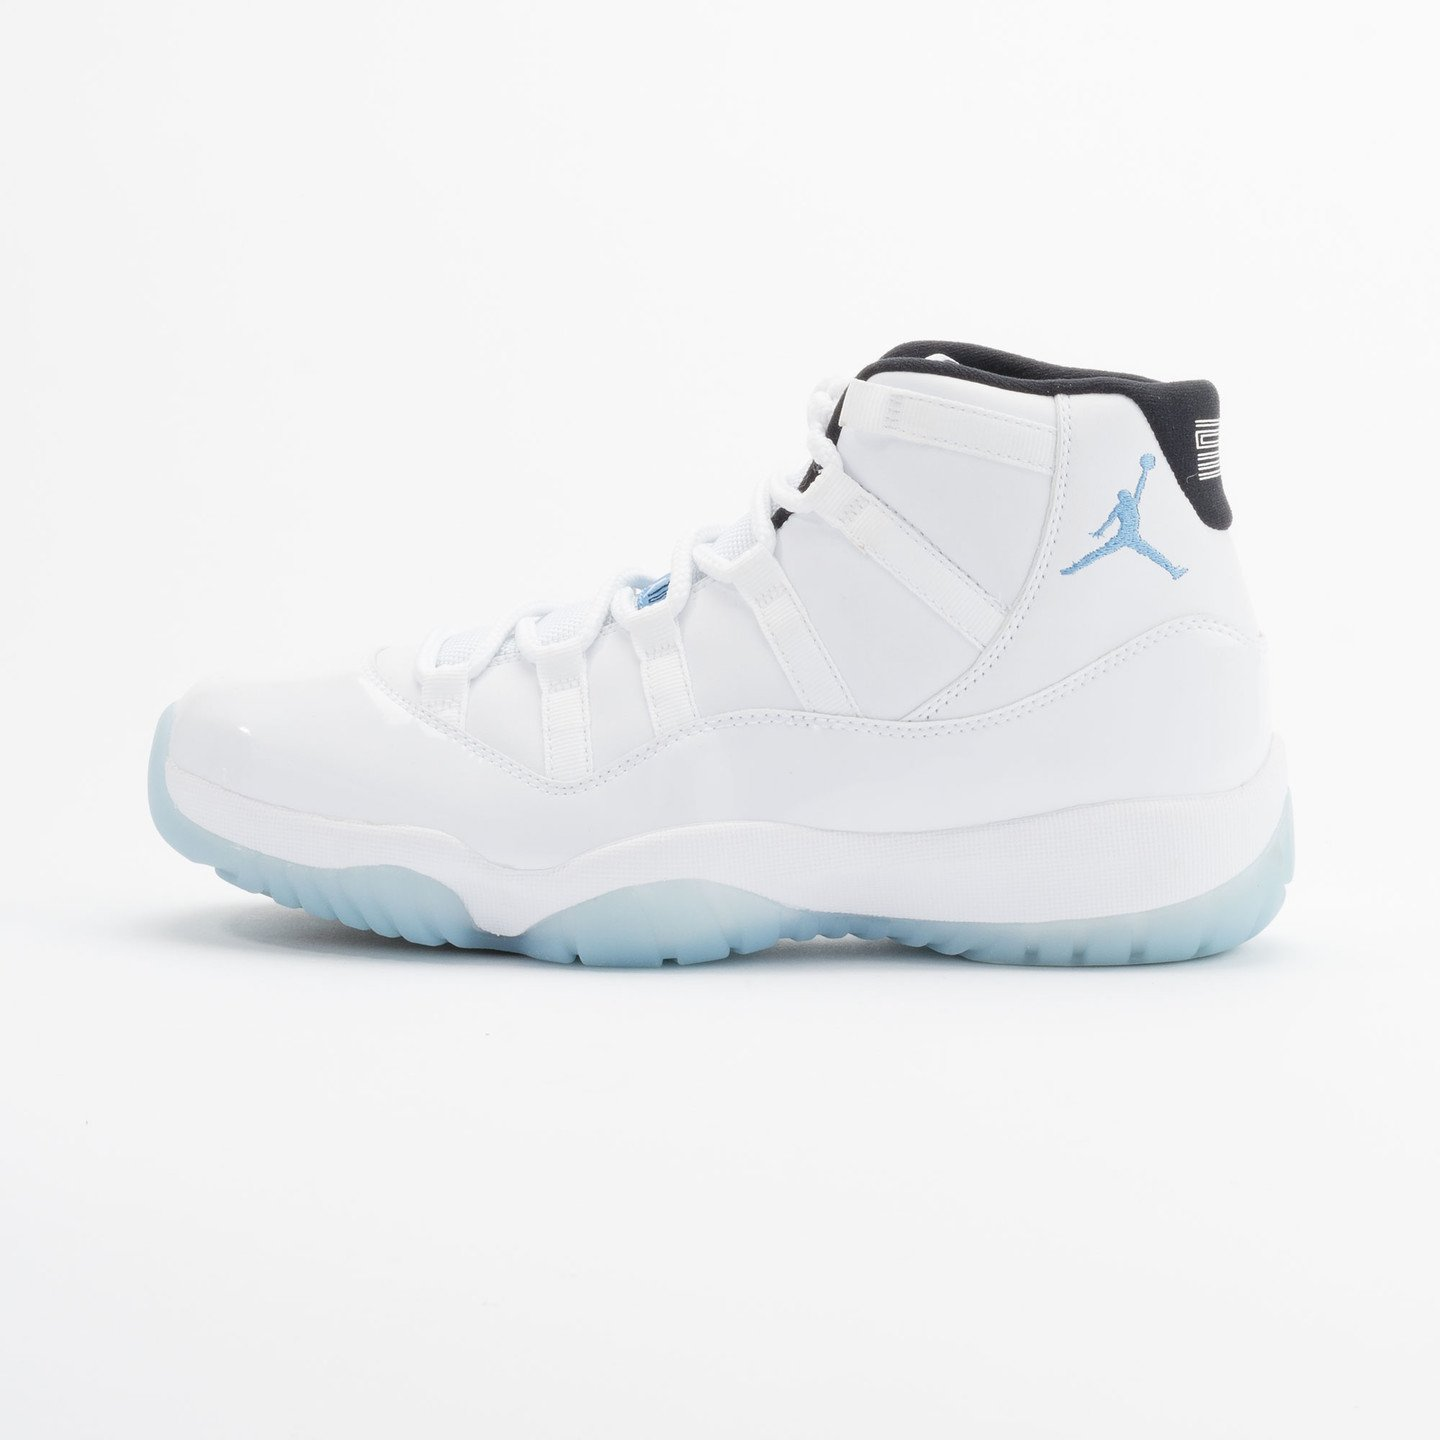 Jordan Air Jordan 11 Retro White/Legend Blue-Black 378037-117-42